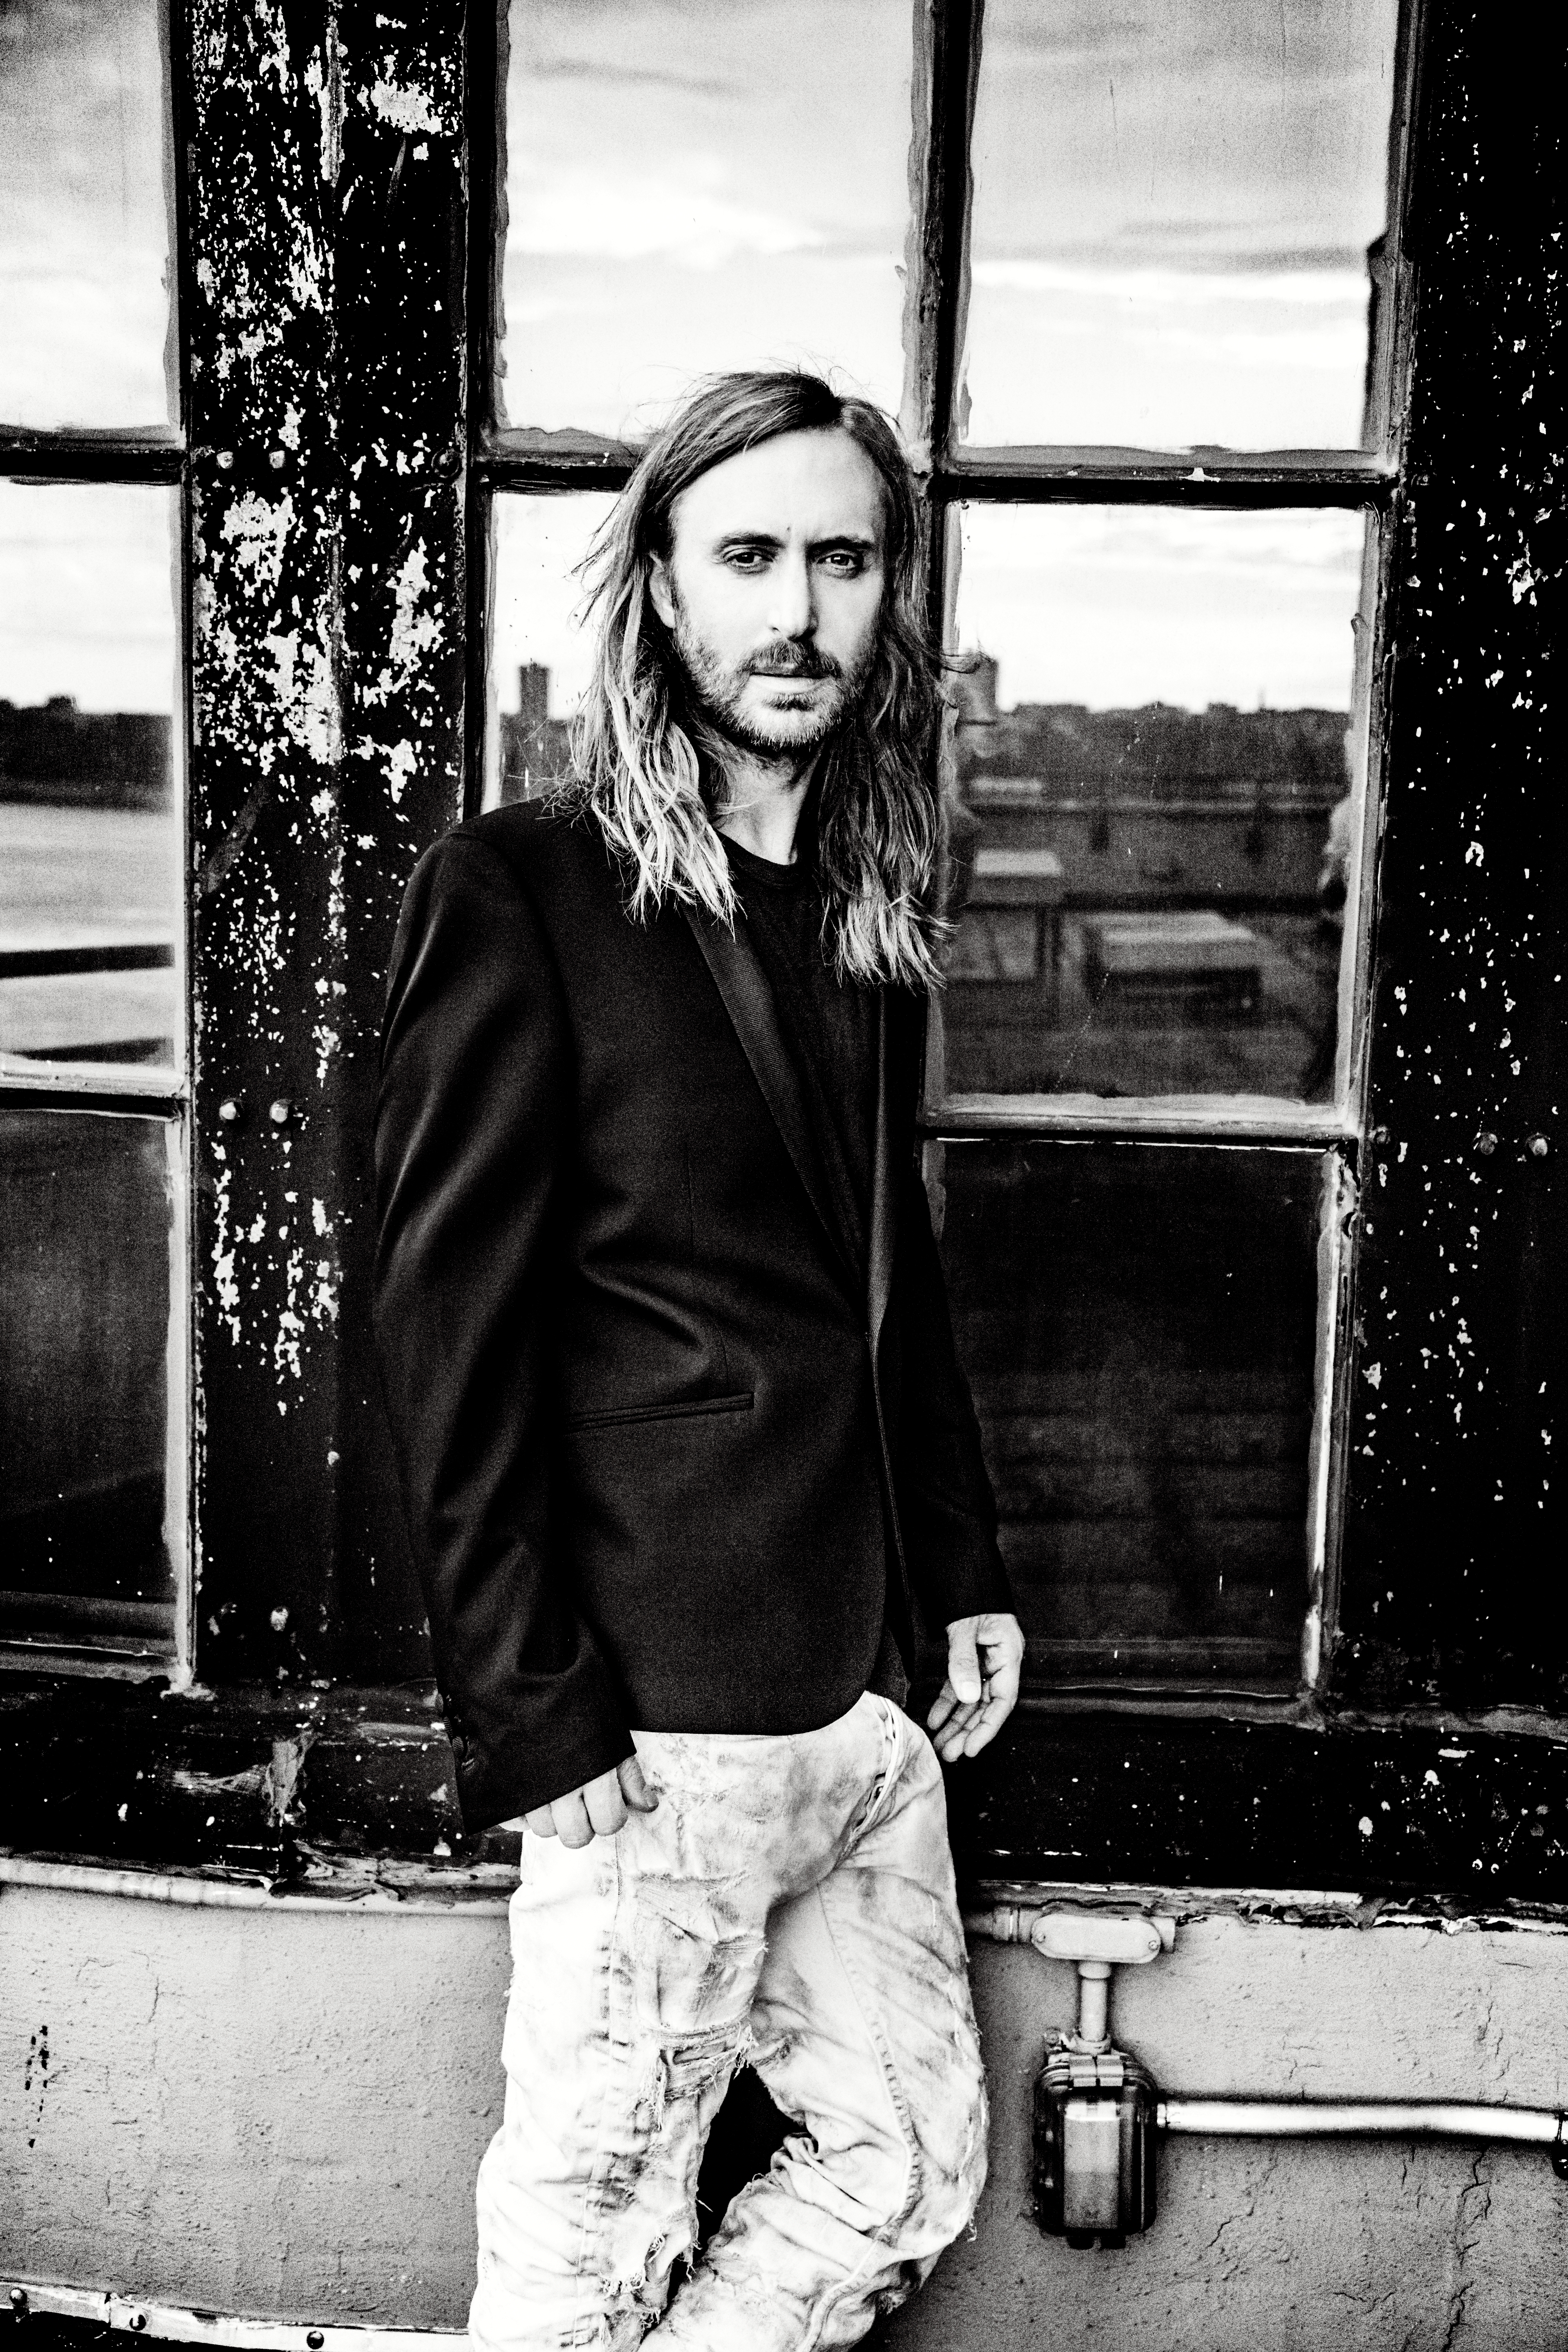 David Guetta 'Listen' Reviews: Is The New Album Any Good?